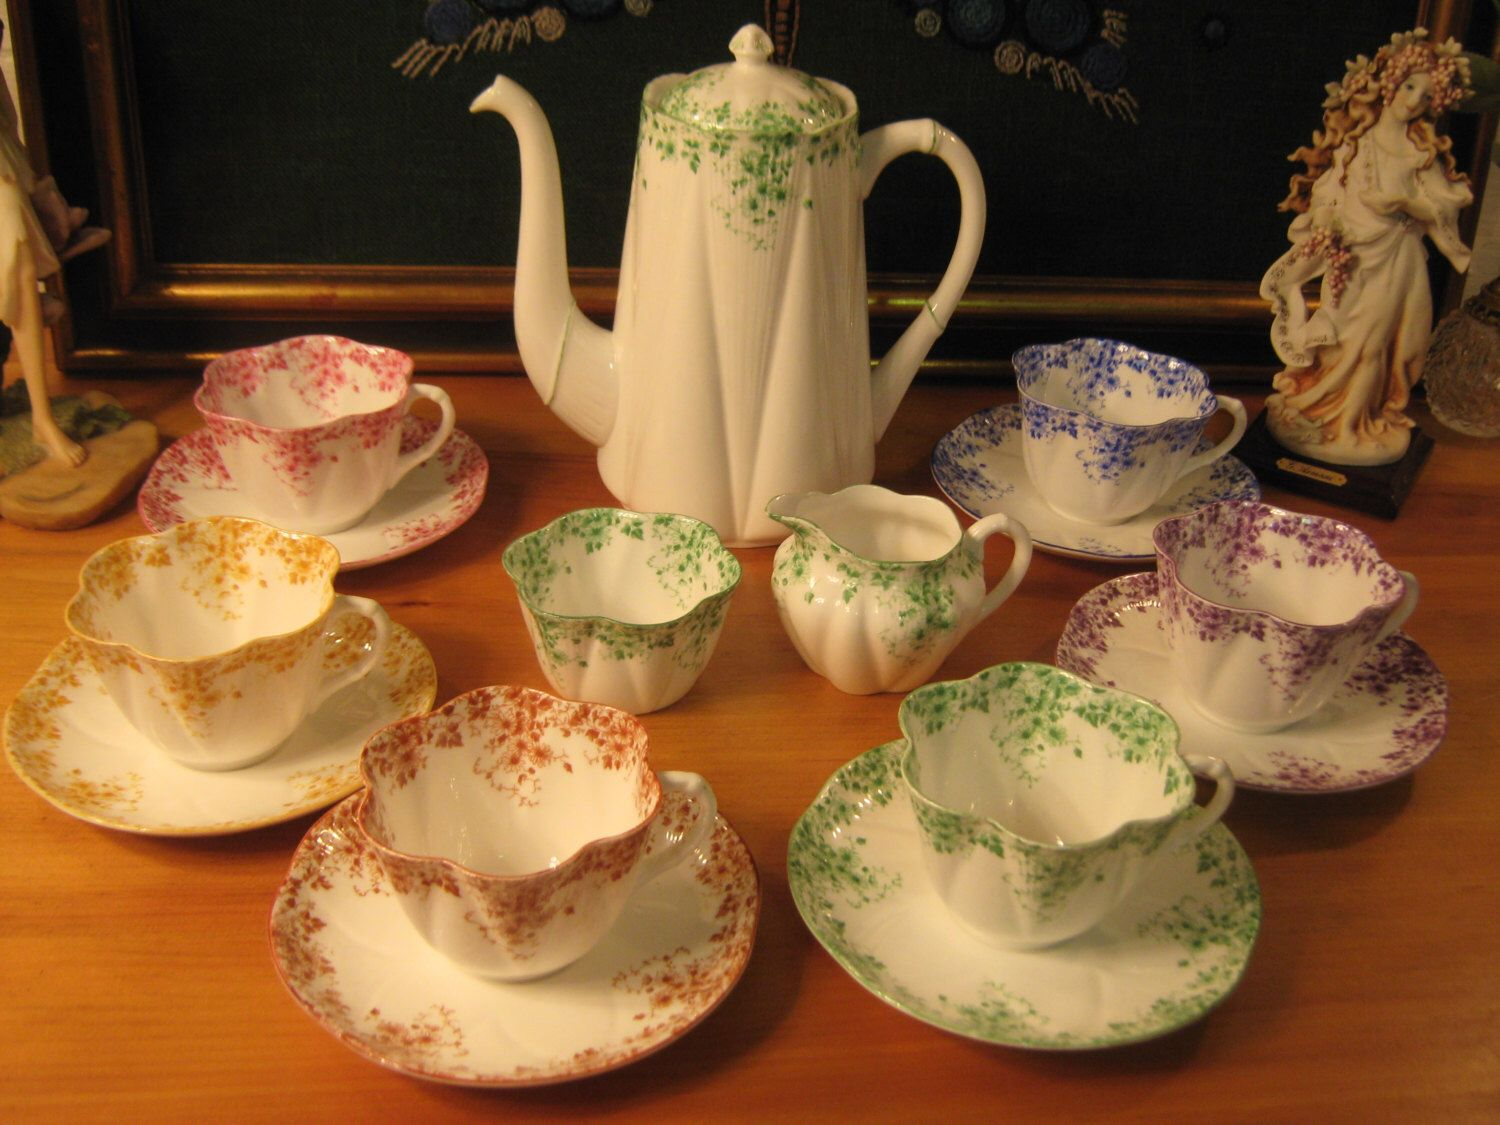 Reserve for Nana! Stunning! Shelley Dainty Multi-Colored Tea set for six.16 Pcs. by alilacollections on Etsy https://www.etsy.com/listing/246435363/reserve-for-nana-stunning-shelley-dainty